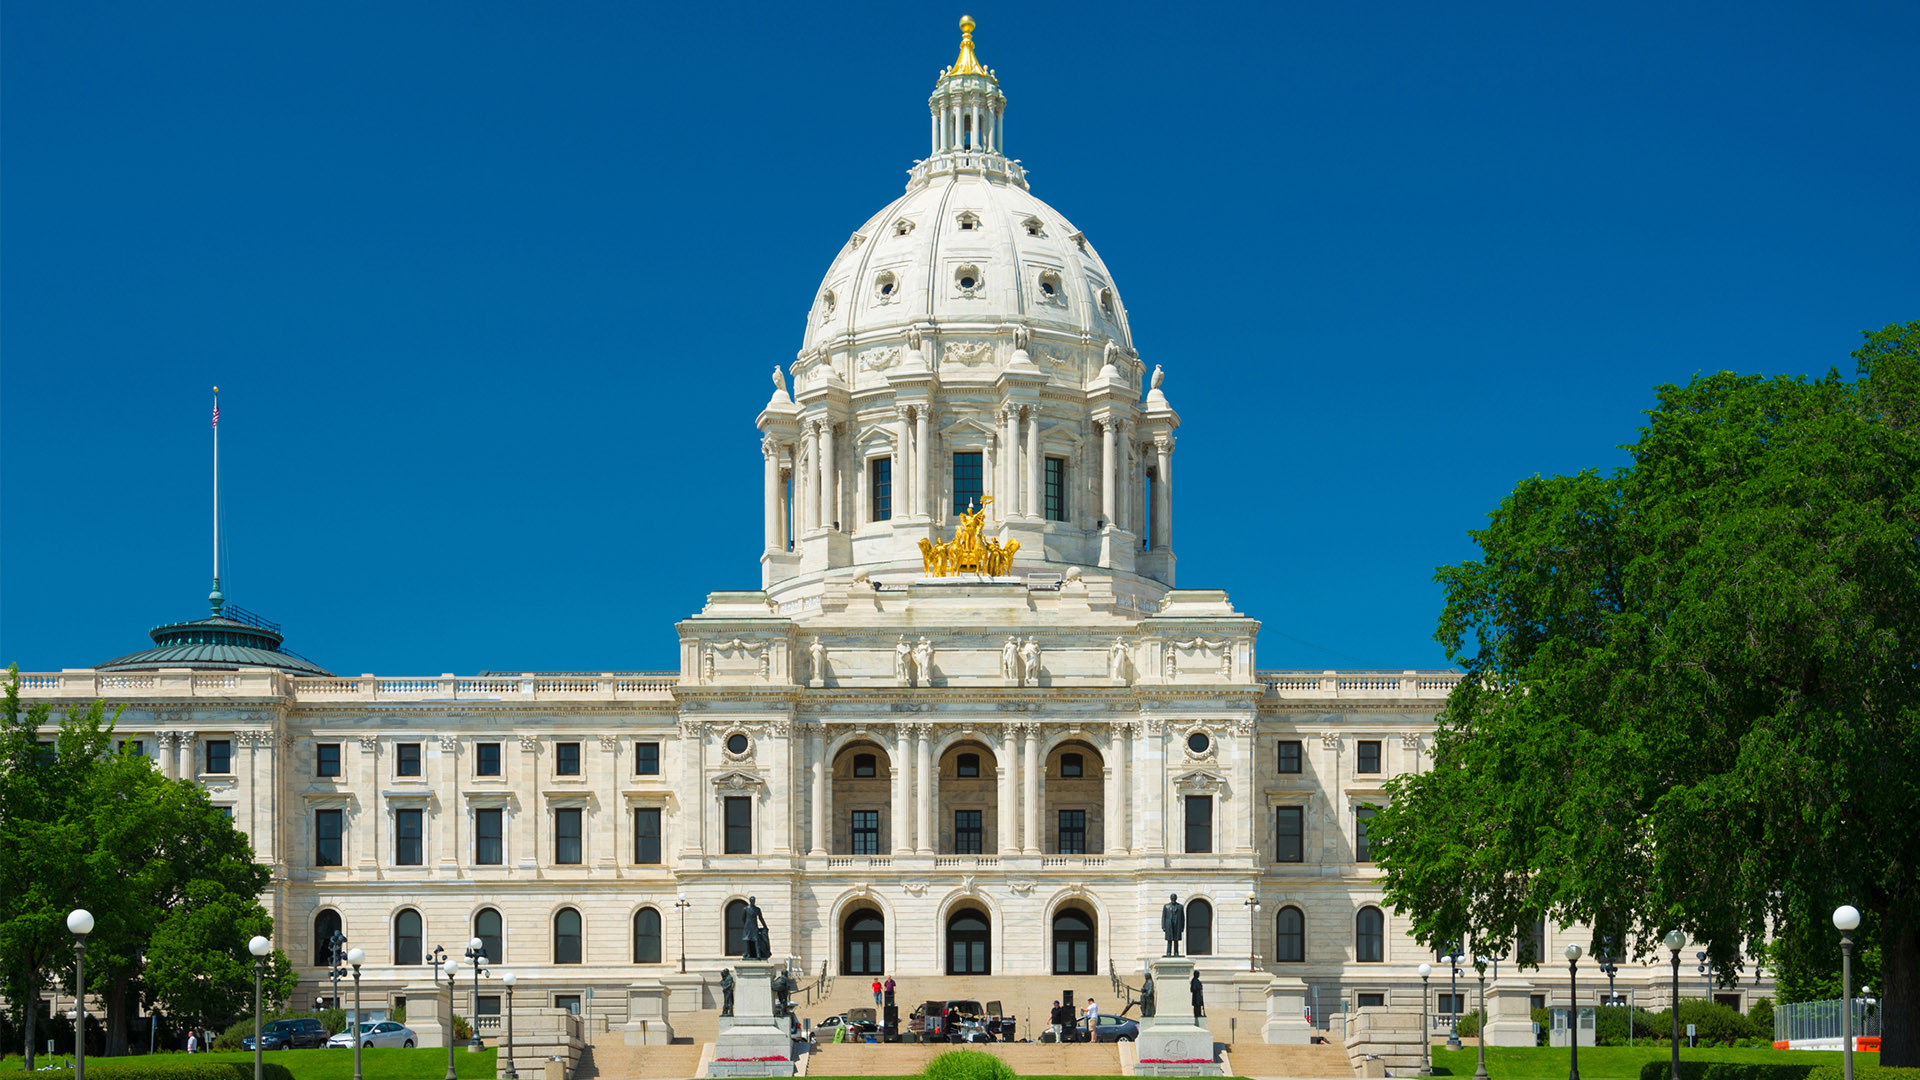 The Minnesota State Capitol on a sunny day in summer